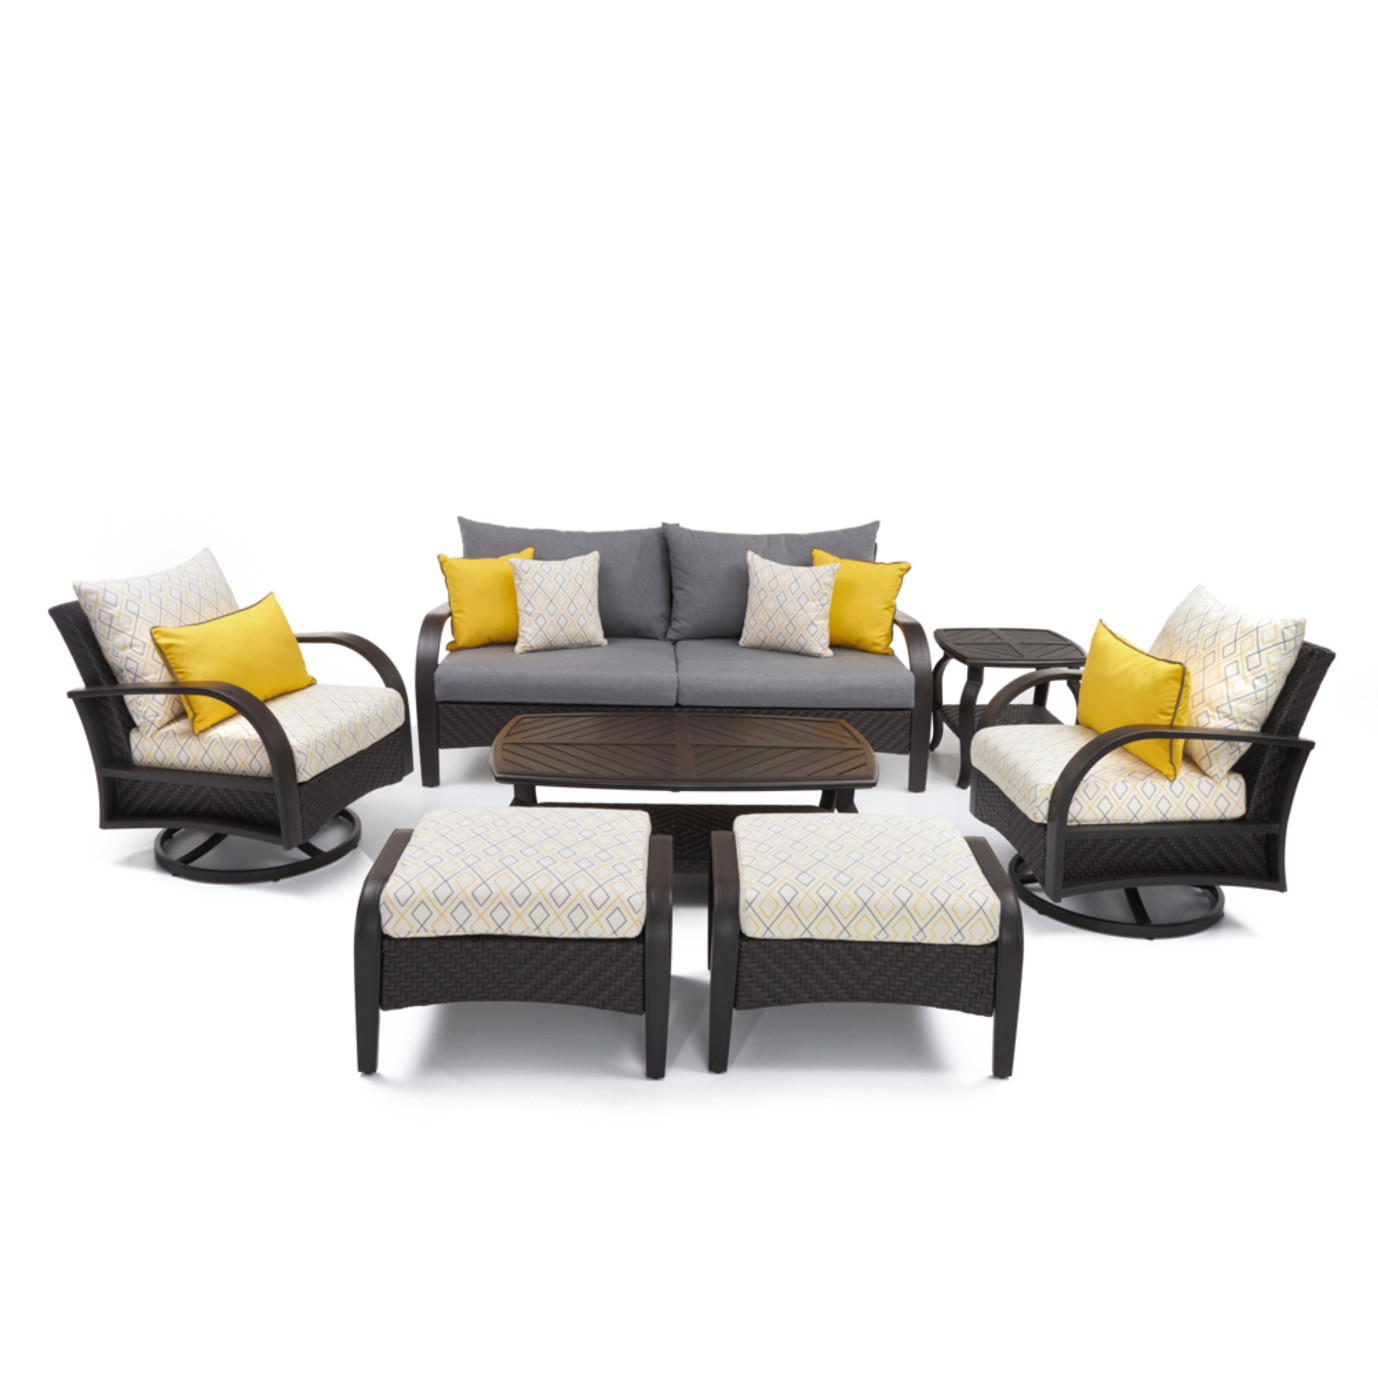 Barcelo™ Deluxe 7pc Motion Club Deep Seating Set - Sunflower Yellow